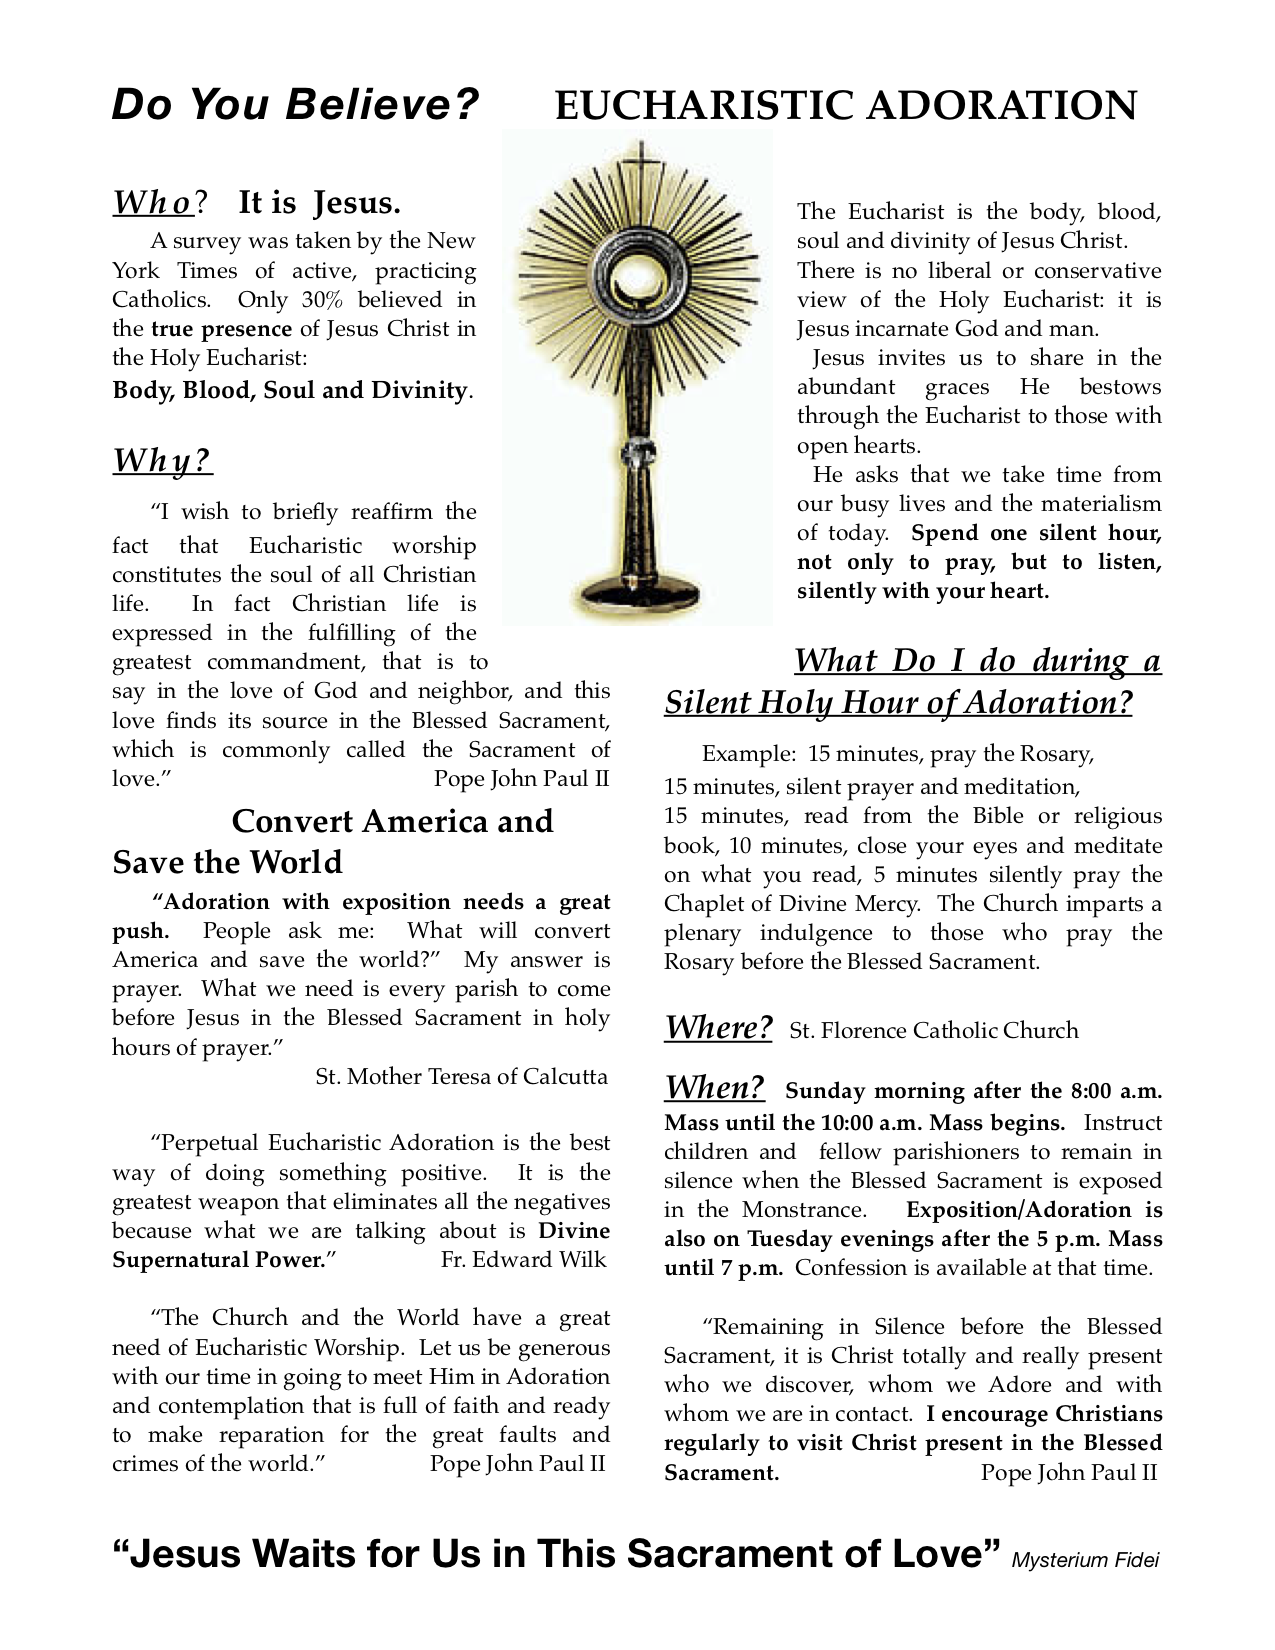 Who, What, Where & When of Holy Hour/Eucharistic Adoration